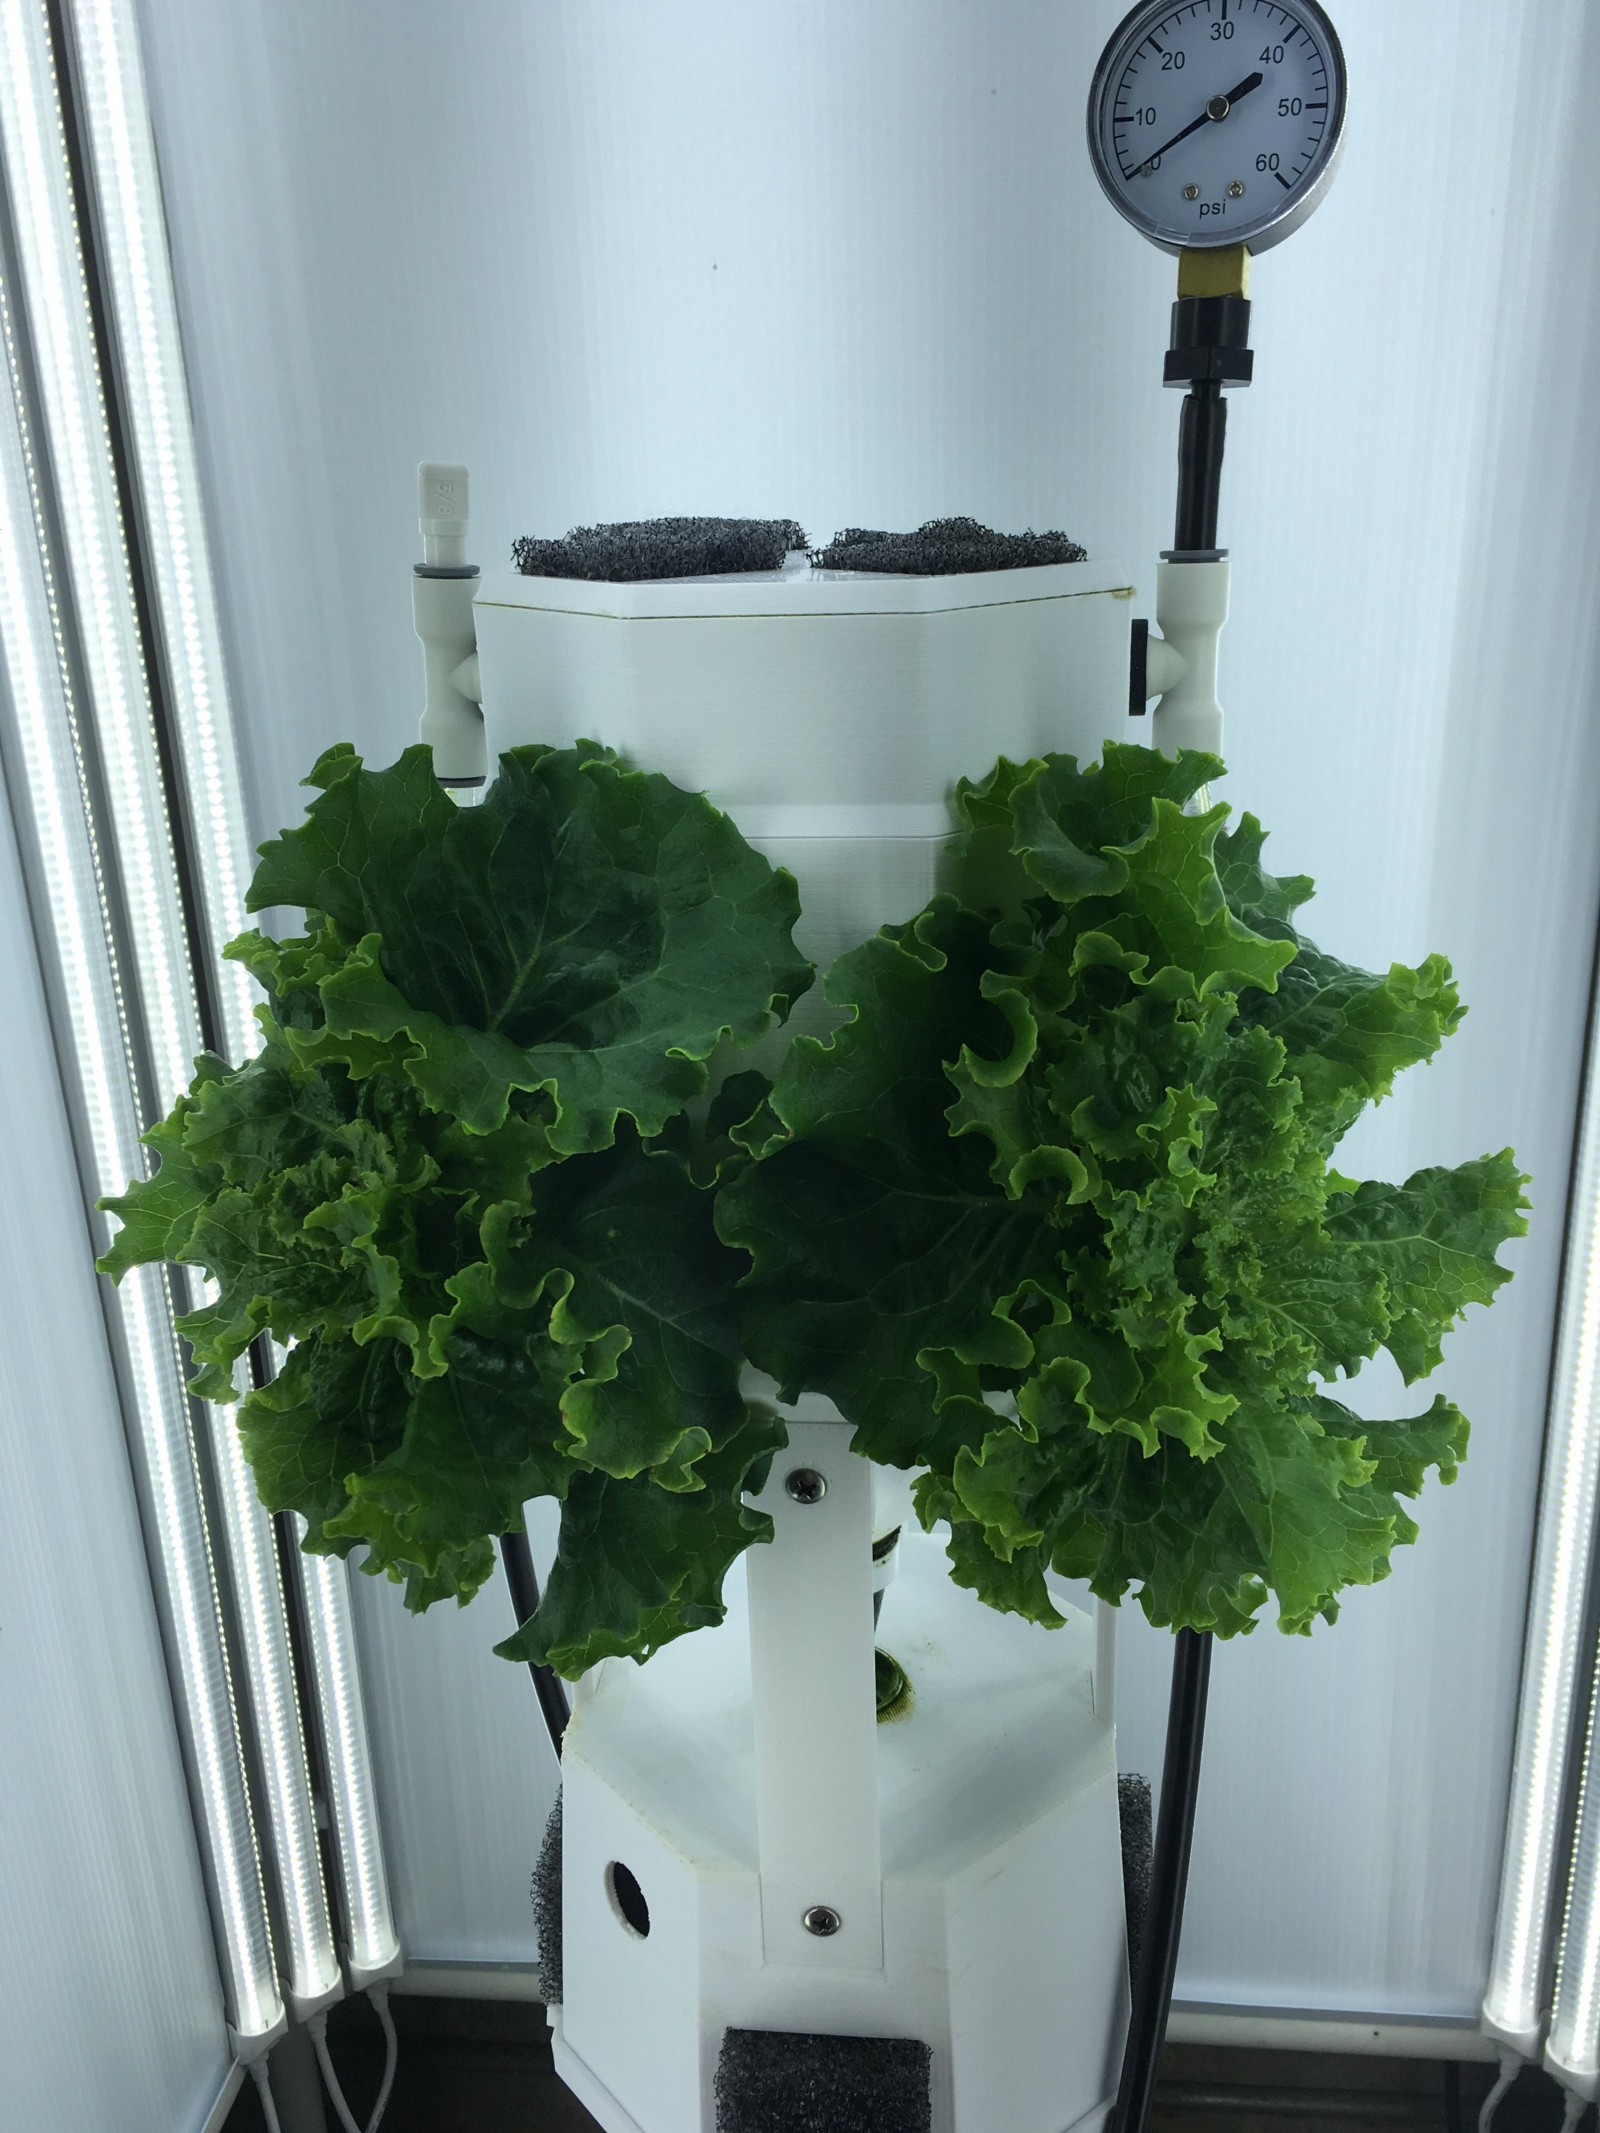 Grow Your Own Vertical Farm in This DIY, Raspberry Pi-Controlled, 3D-Printed Tower